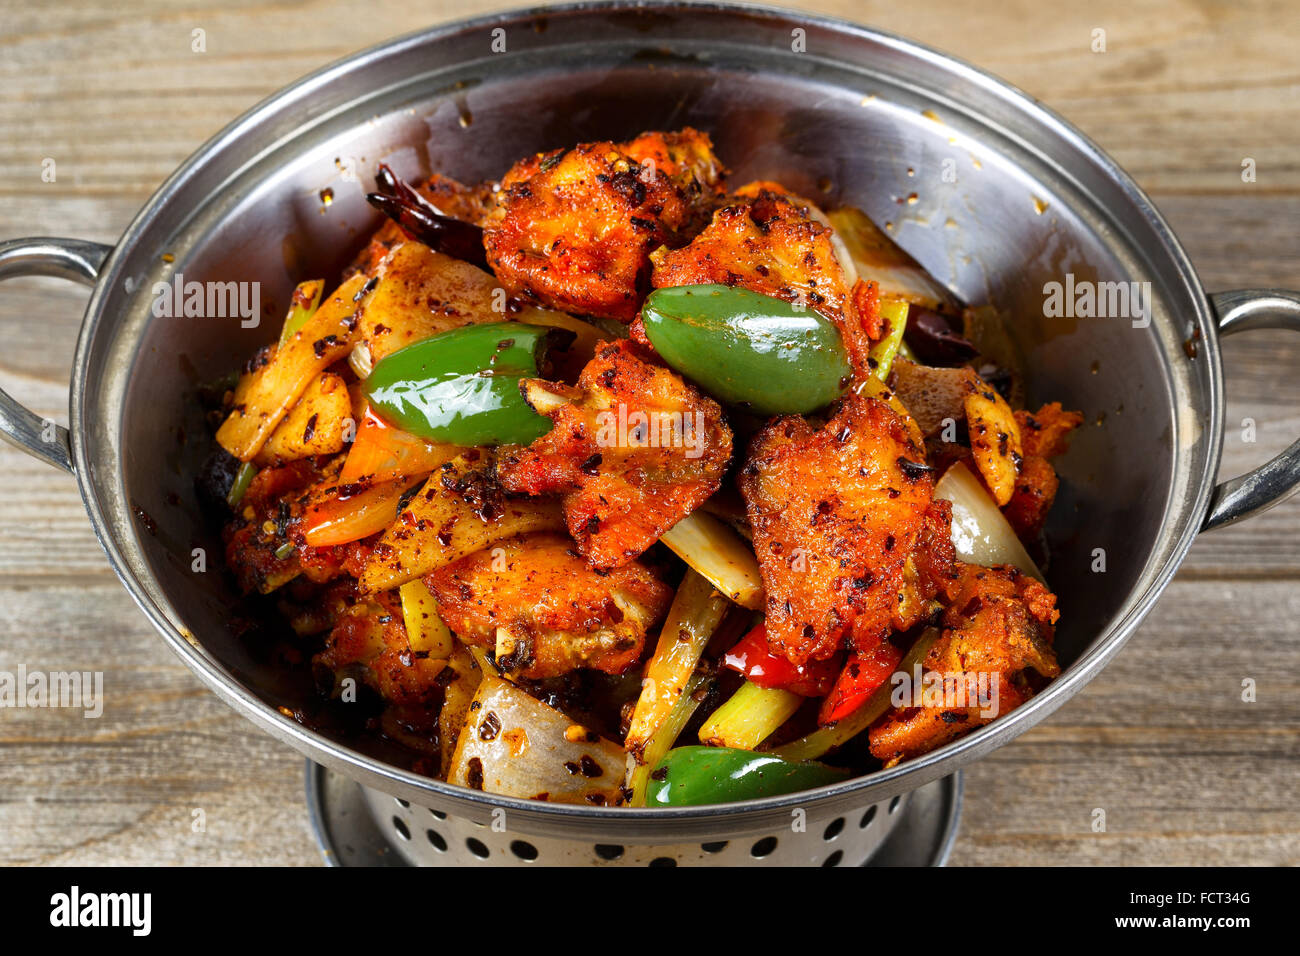 High angled view of a stainless steel cooking pot filled fried chicken and vegetables on rustic wood. - Stock Image